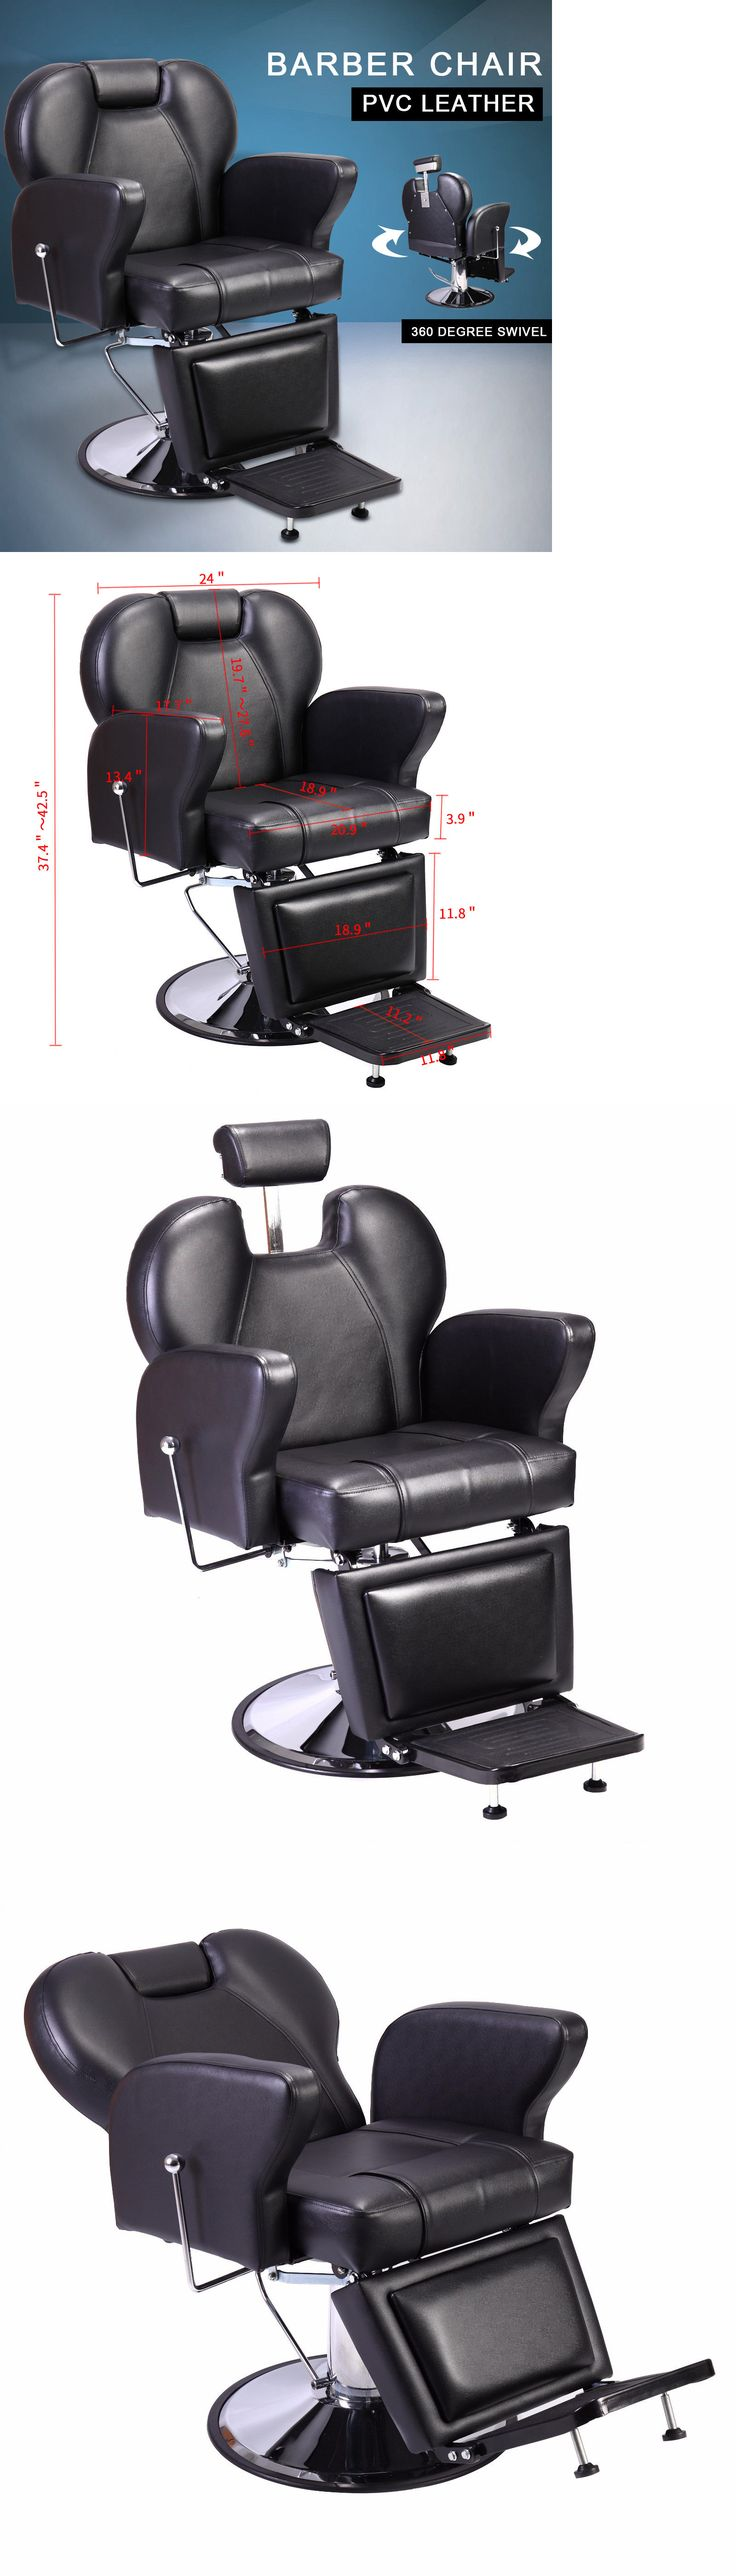 Stylist Stations And Furniture: Recline Contemporary Beauty Salon Hydraulic  Barber Swivel Chair Equipment Swivel